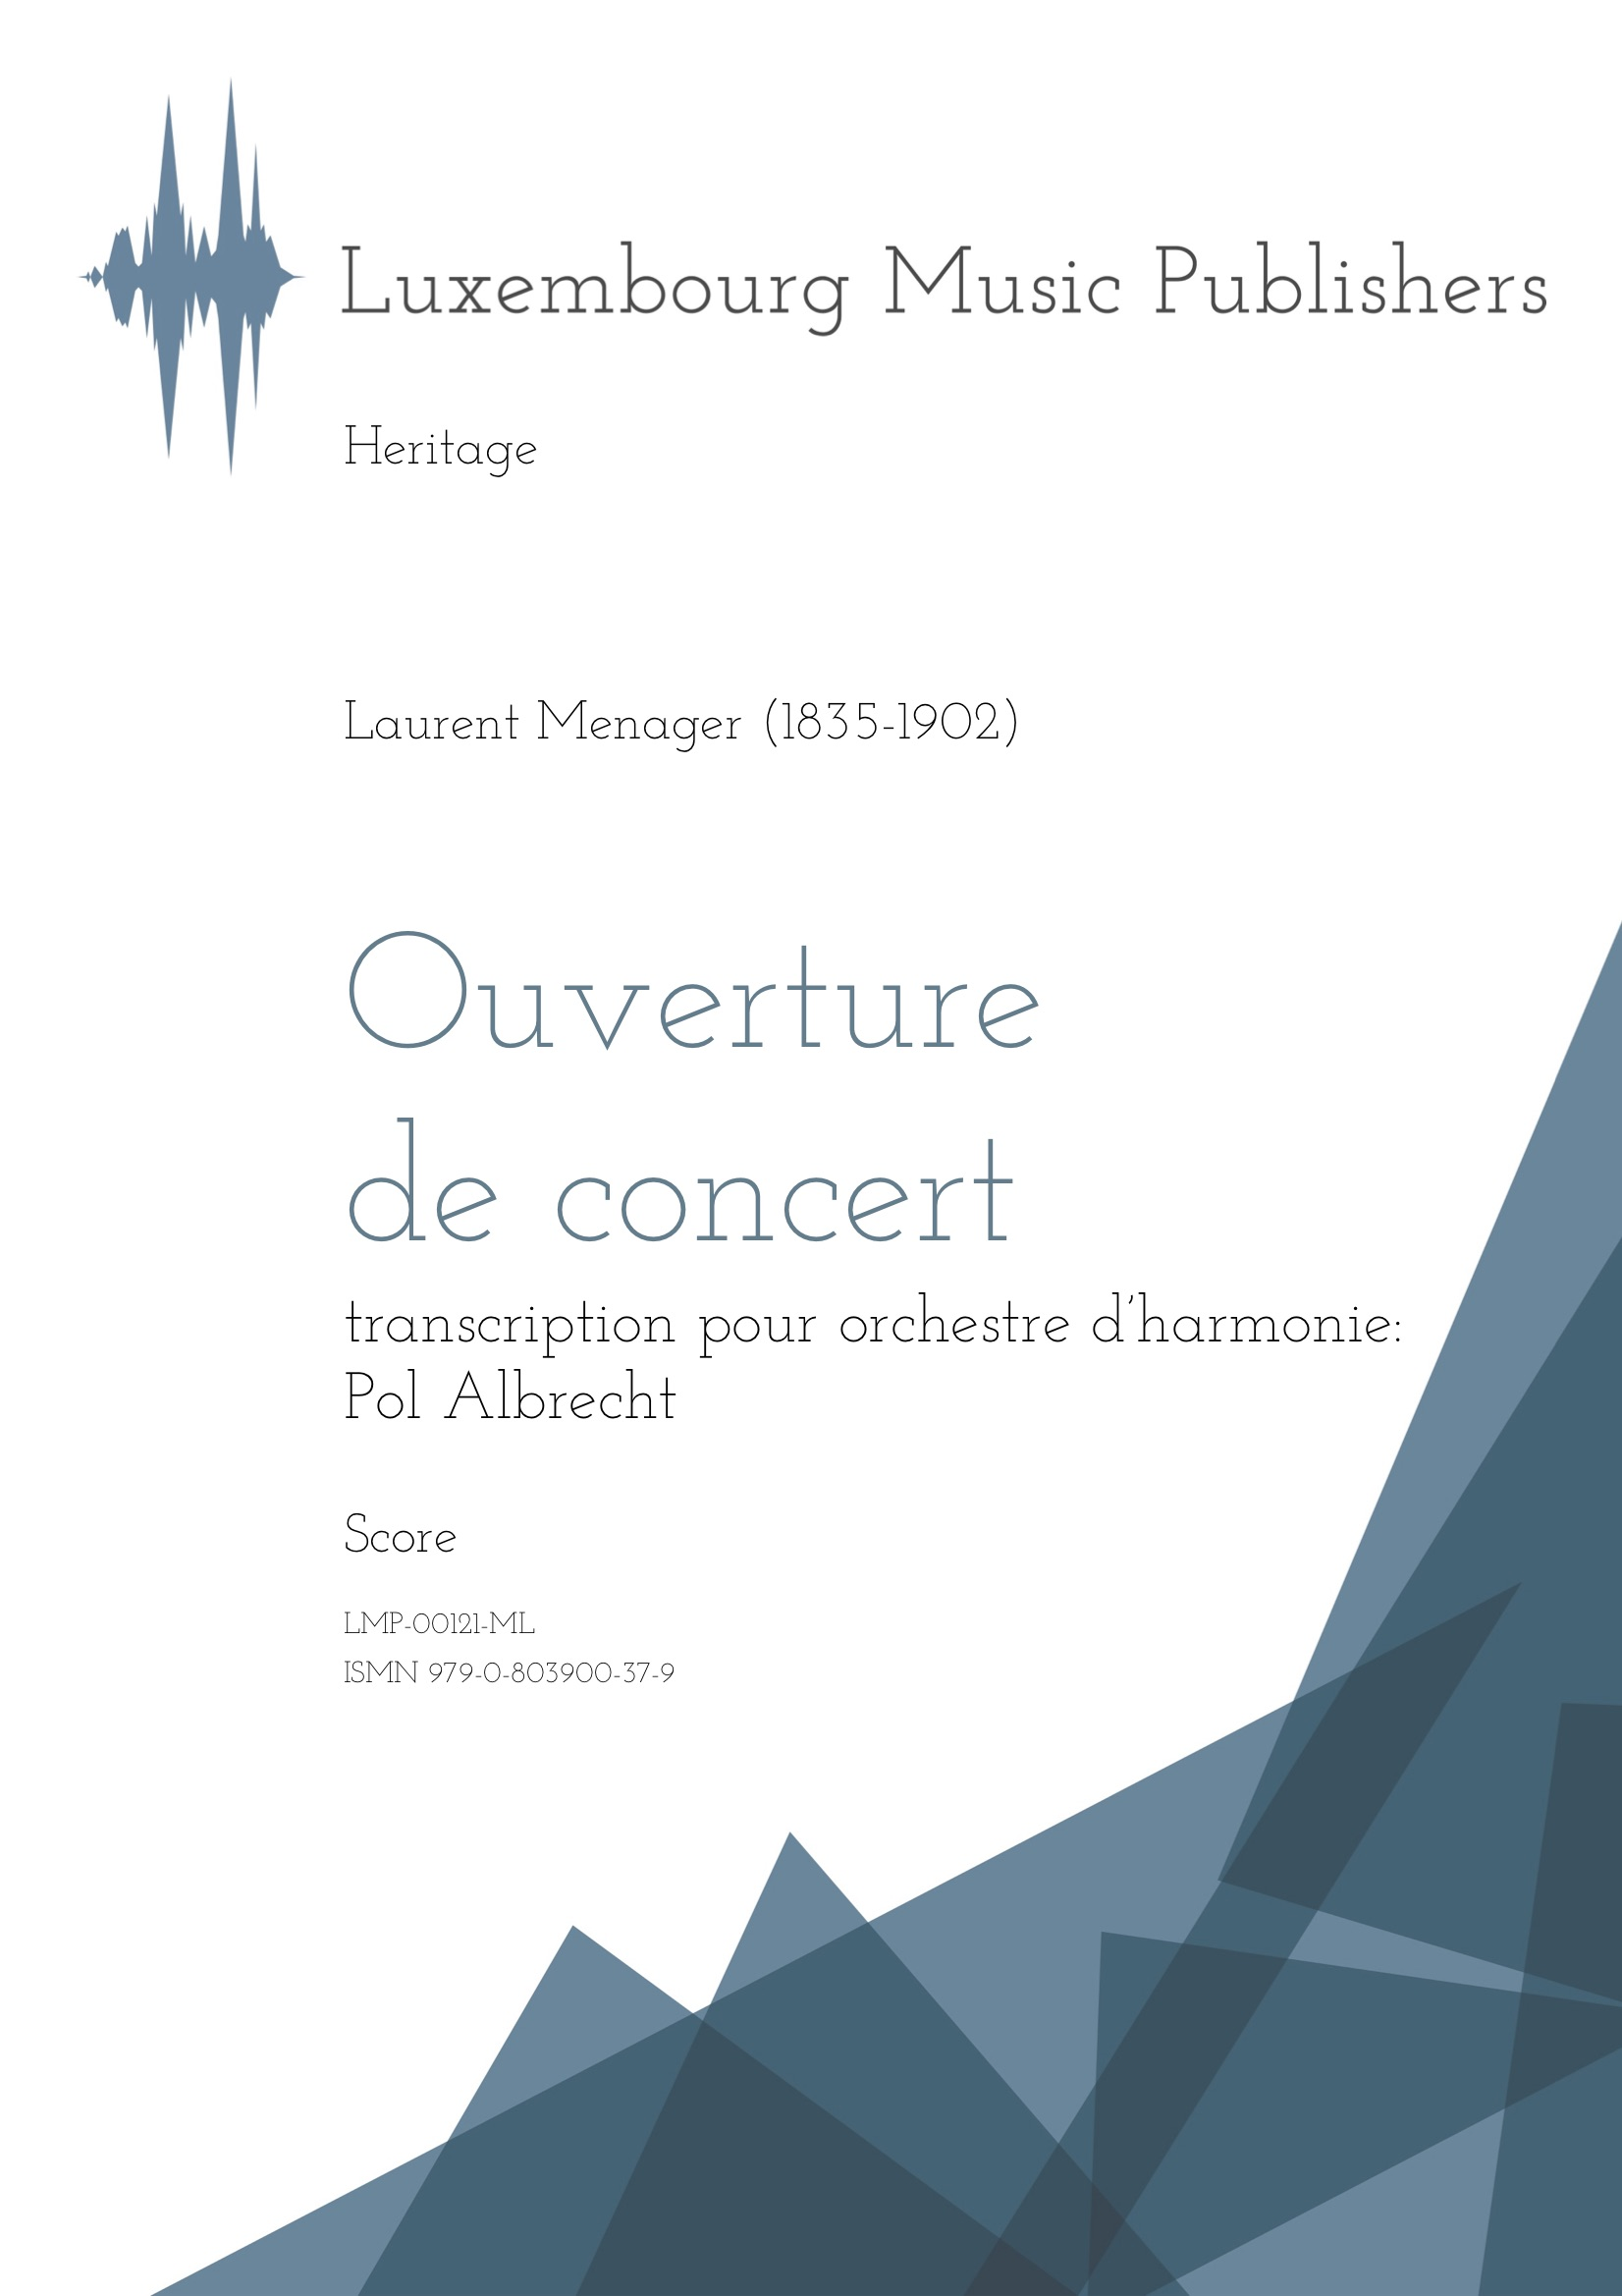 Ouverture de concert. Sheet Music by Laurent Menager, composer. Transcription by Pol Albrecht. Music for wind orchestra. Music for symphonic wind orchestra/band. Score.